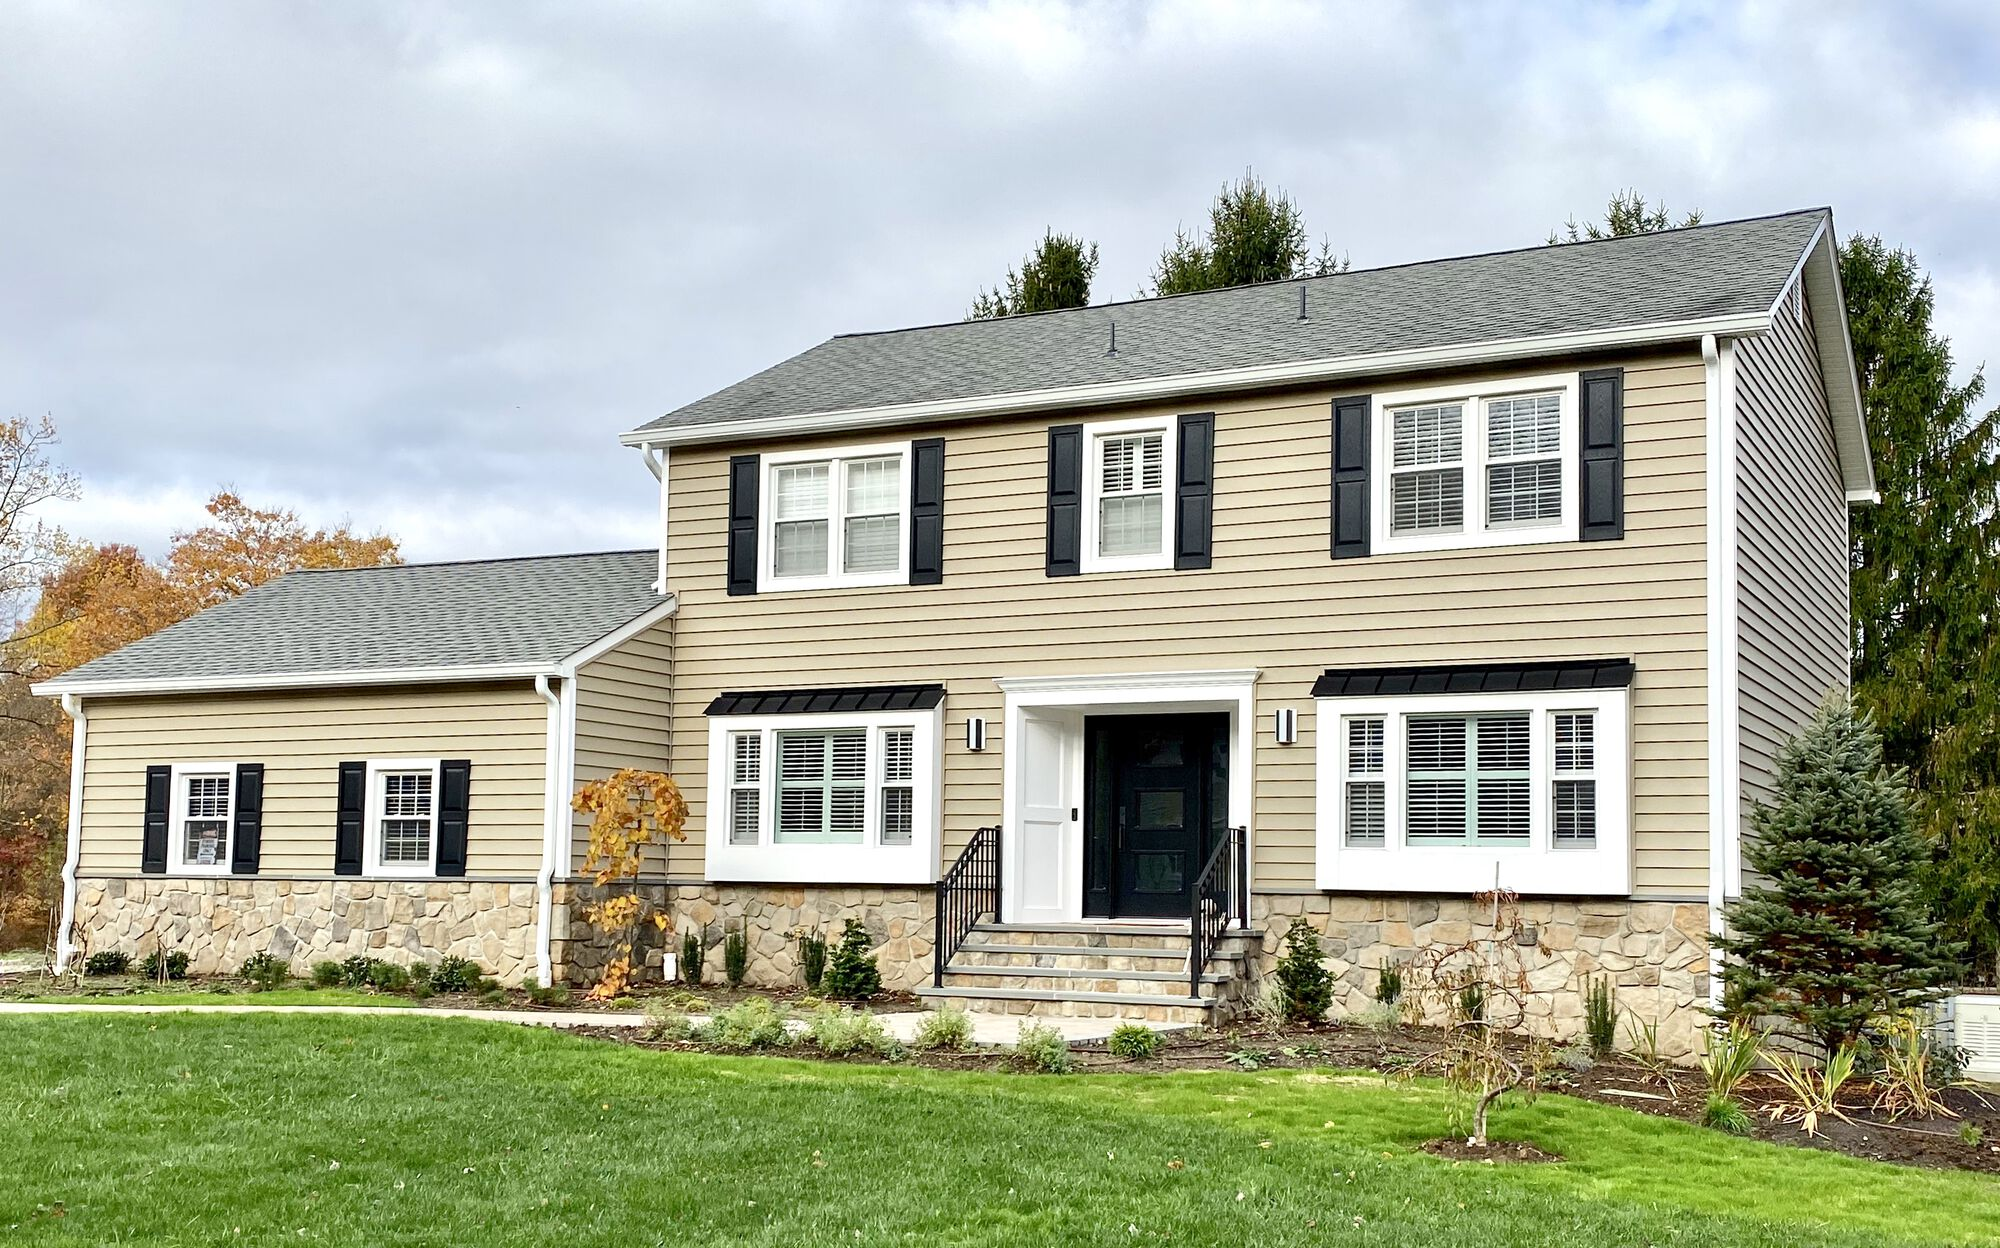 Alside Prodigy Clapboard Siding with Cultured Stone Veneer to Foundation and Steps in Randolph, Morris County NJ